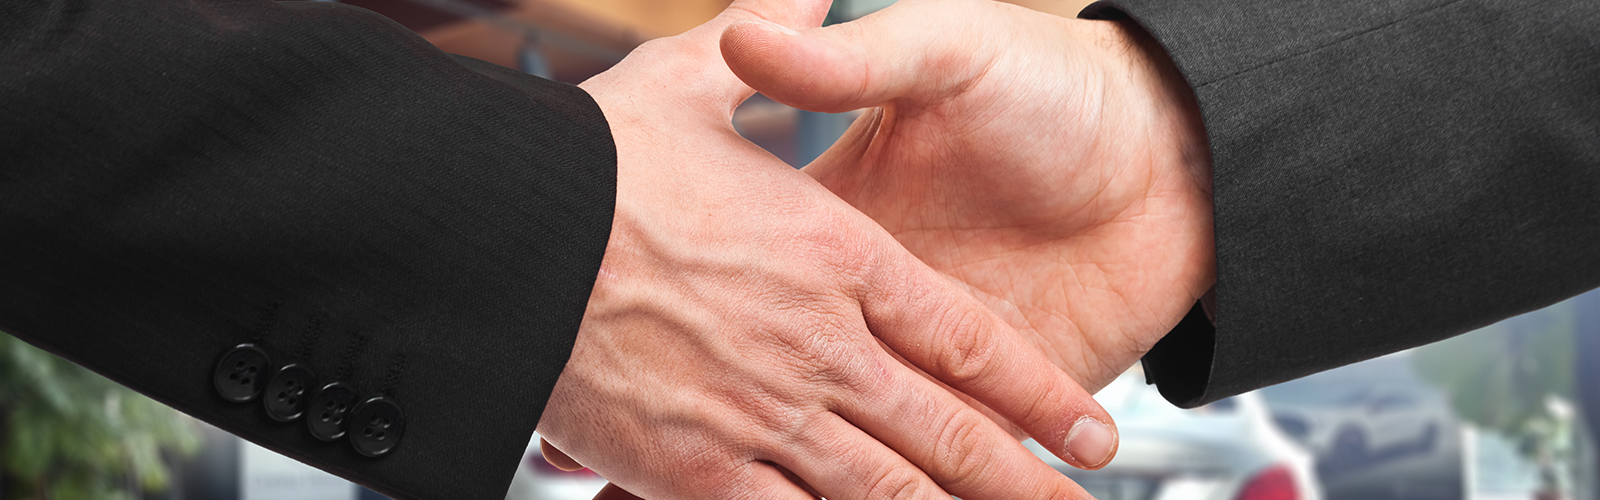 Close up of two men in suits shaking hands